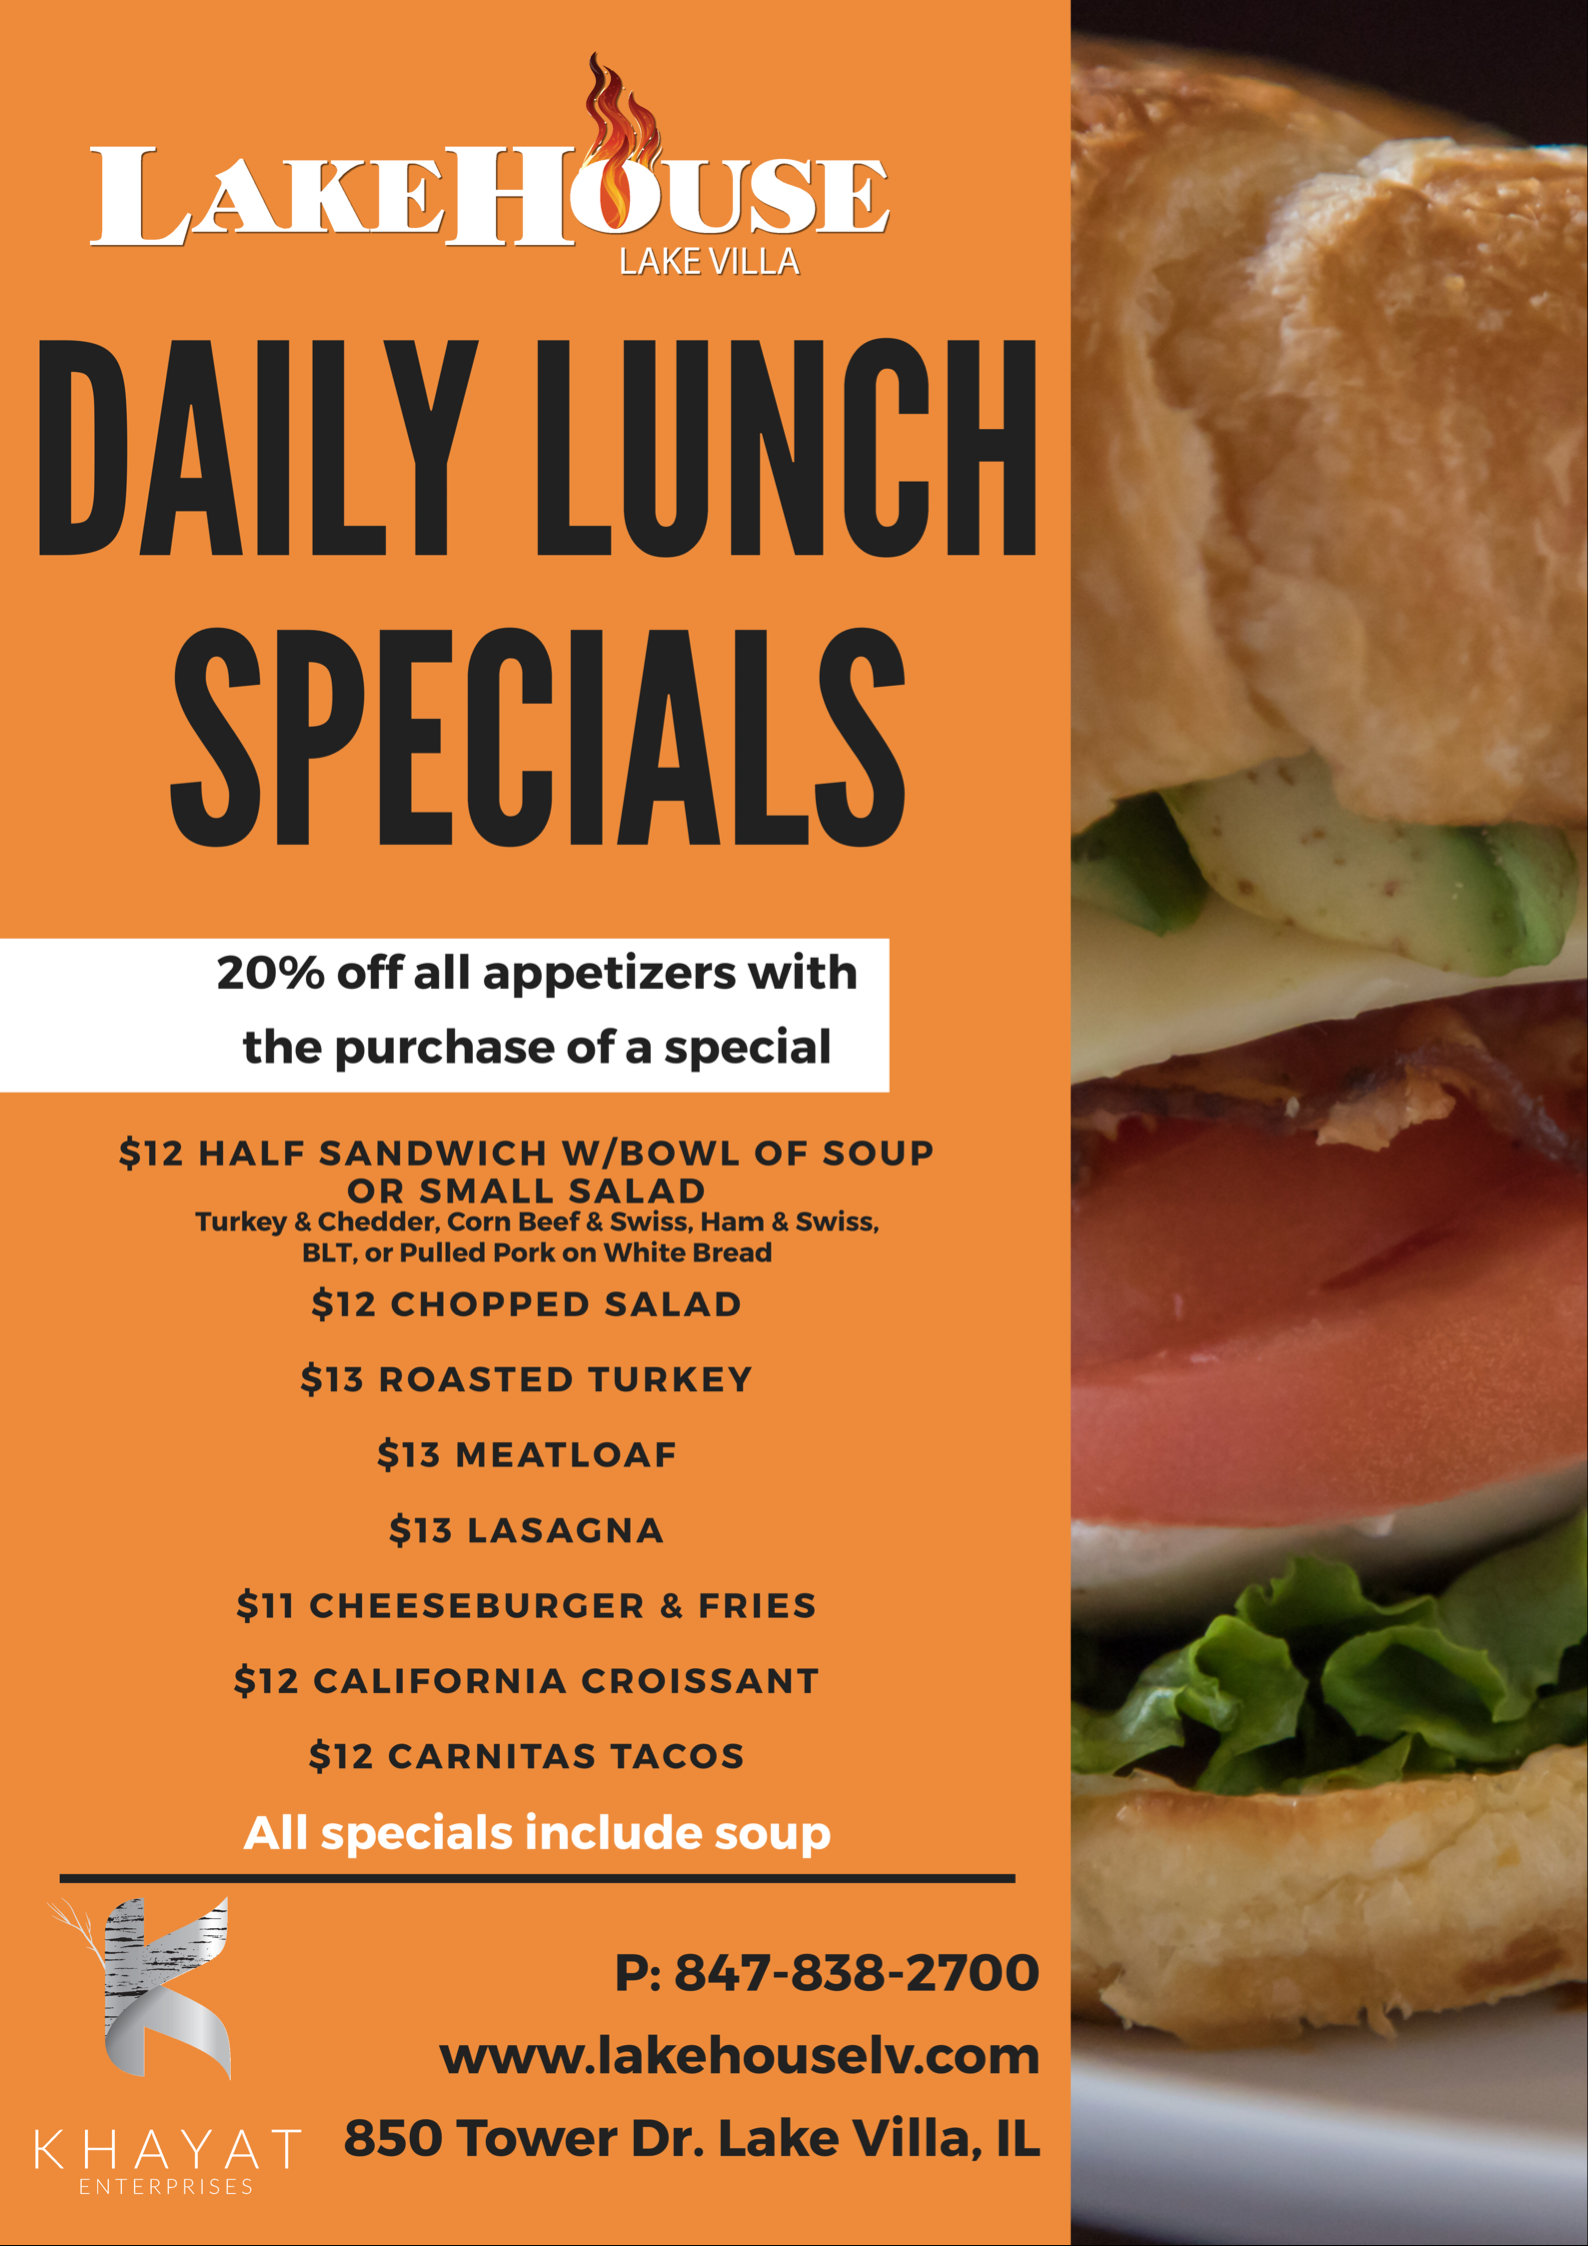 Daily Lunch Specials For Lakehouse Lake Villa